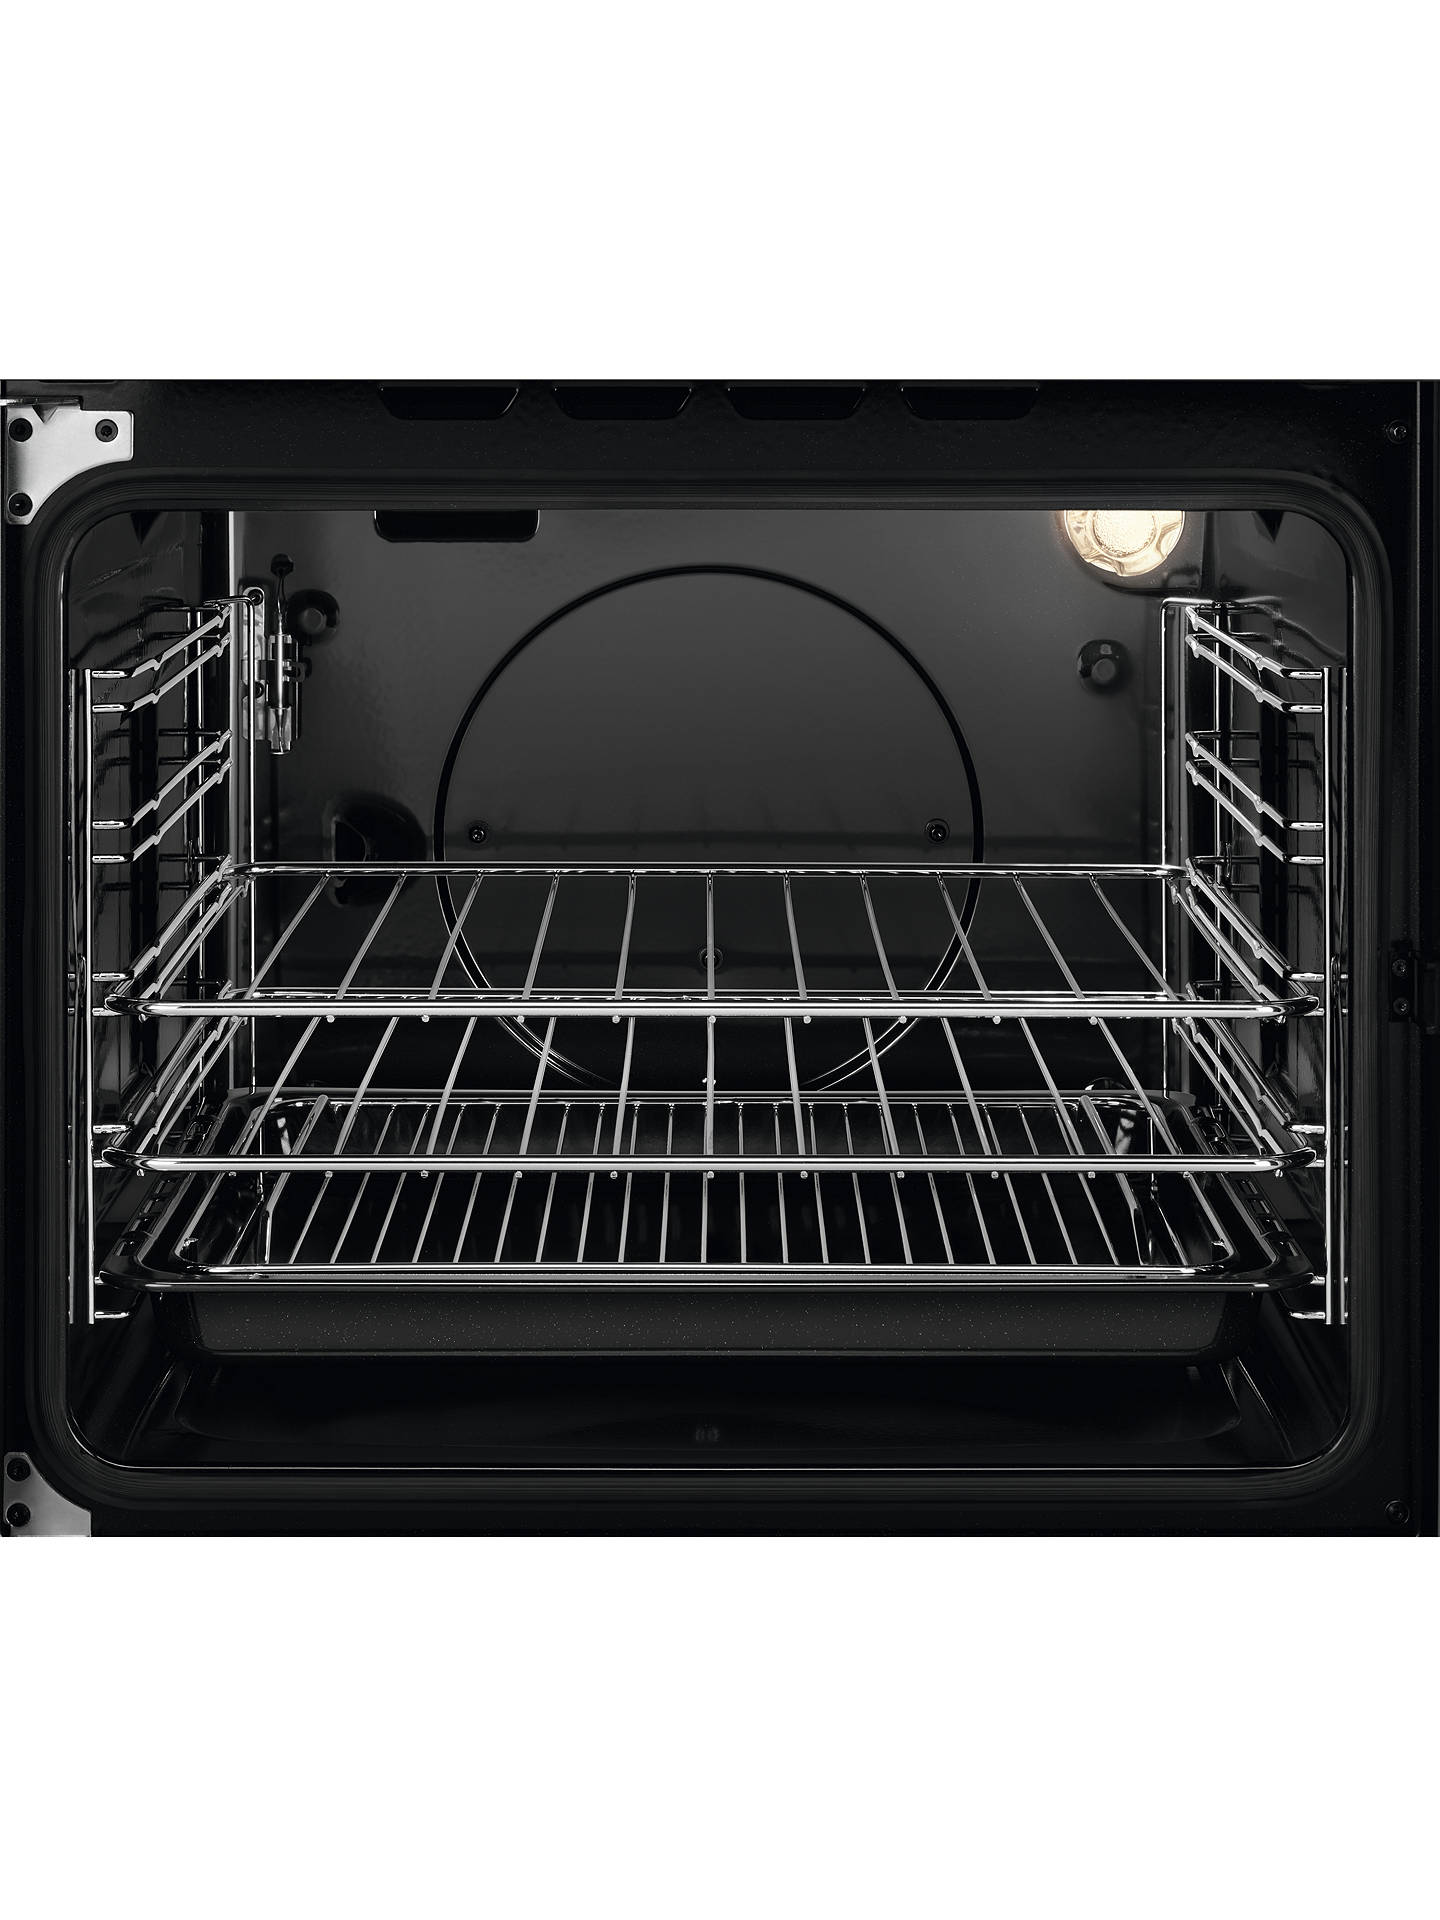 Buy Zanussi ZCG43050WA Freestanding Gas Cooker, 55cm Wide, Black/White Online at johnlewis.com